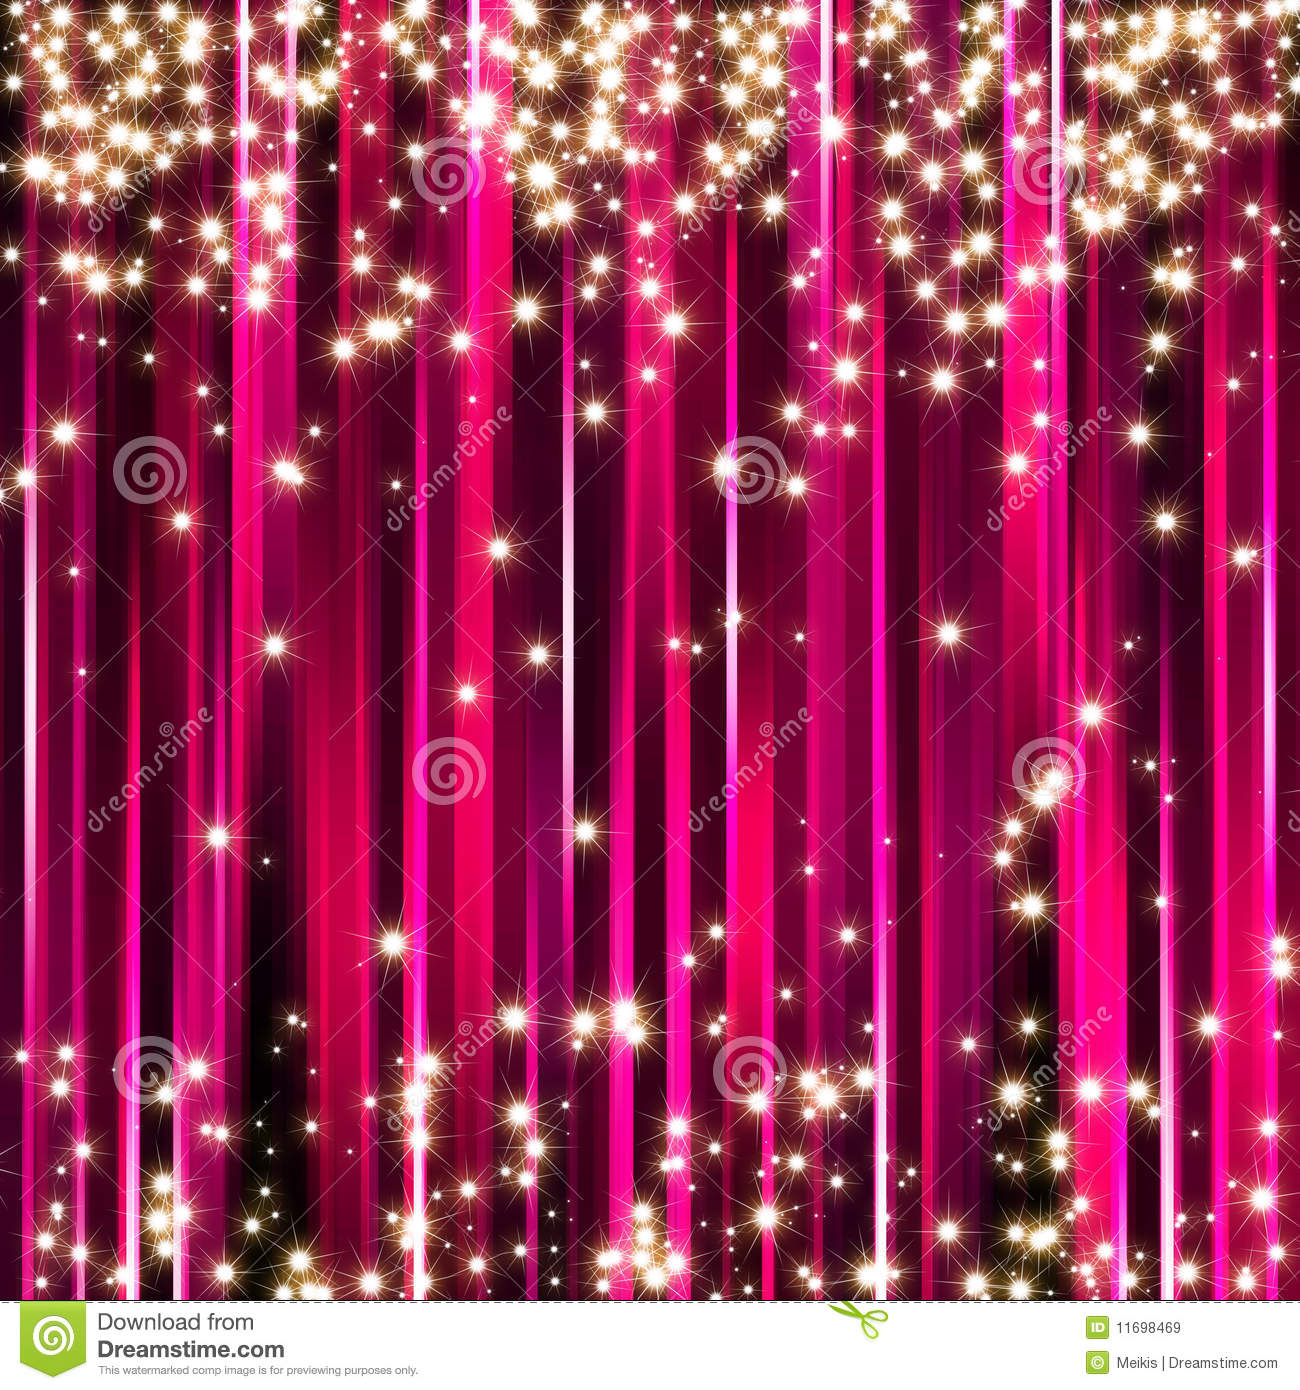 Breast Cancer 3d Wallpaper For Pc Sparkle Pink Stars Background Royalty Free Stock Images